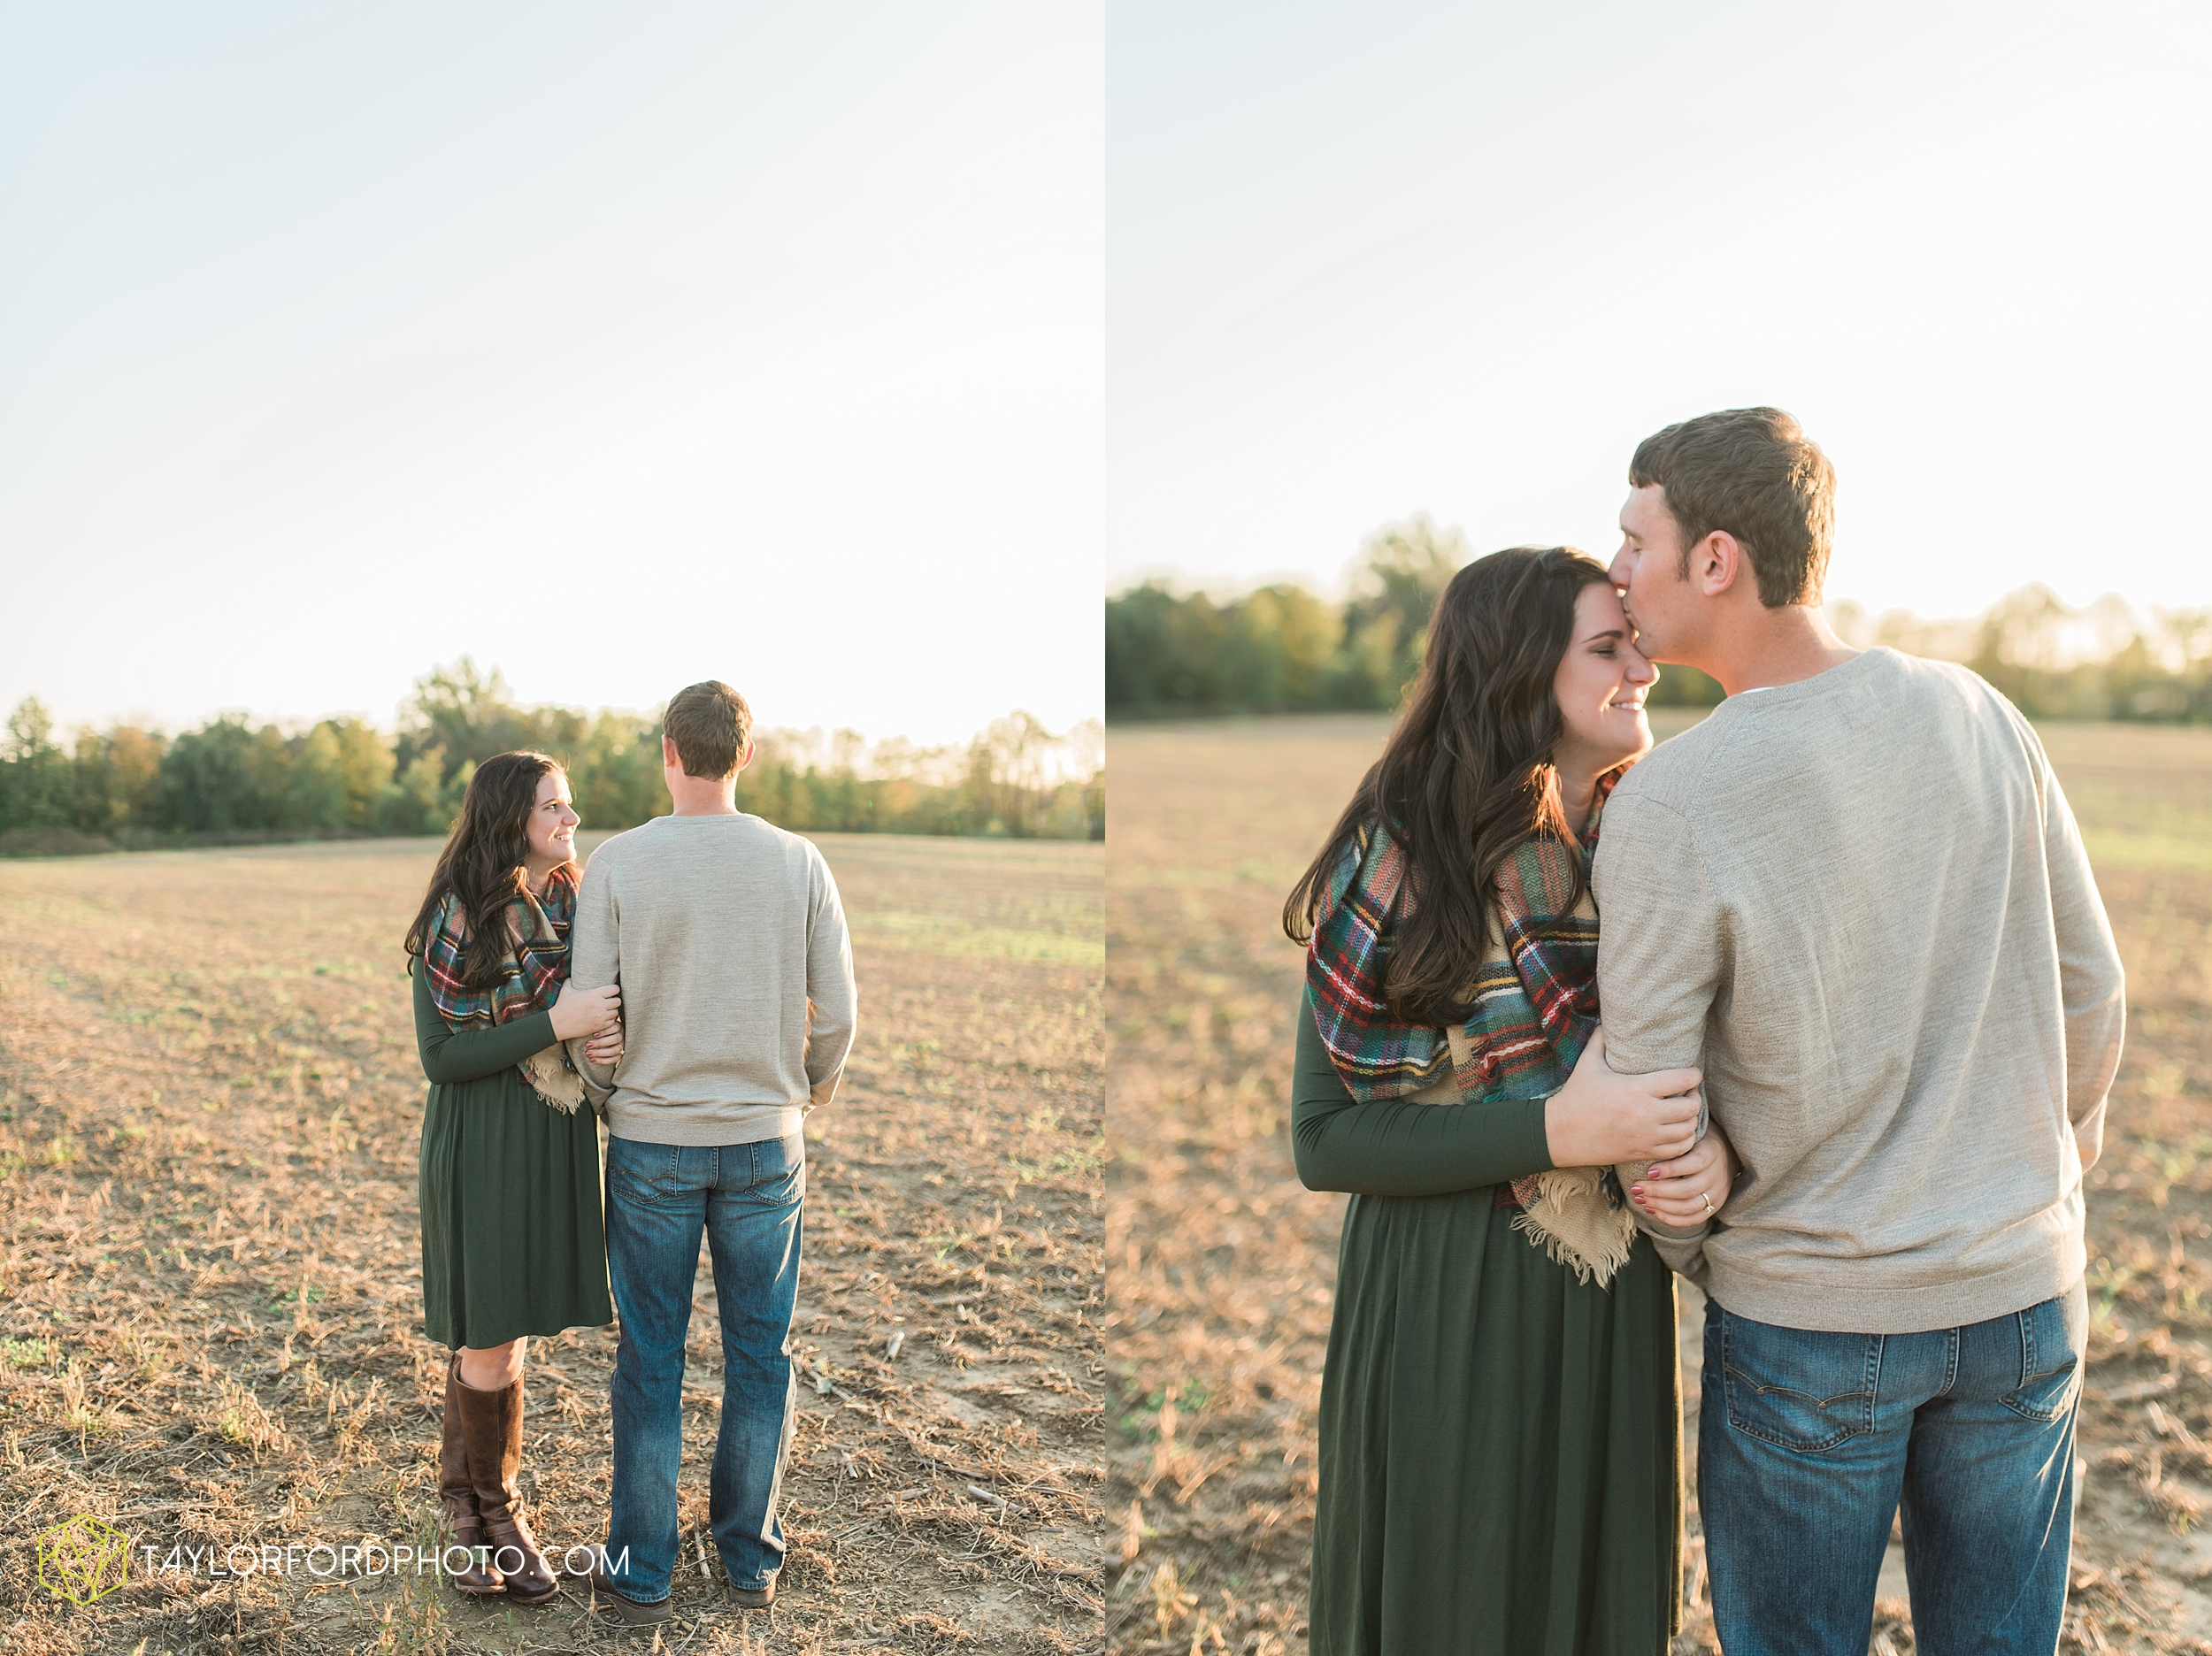 fort-wayne-indiana-engagement-wedding-photographer-Taylor-Ford-Photography-salomon-farm-park_3581.jpg